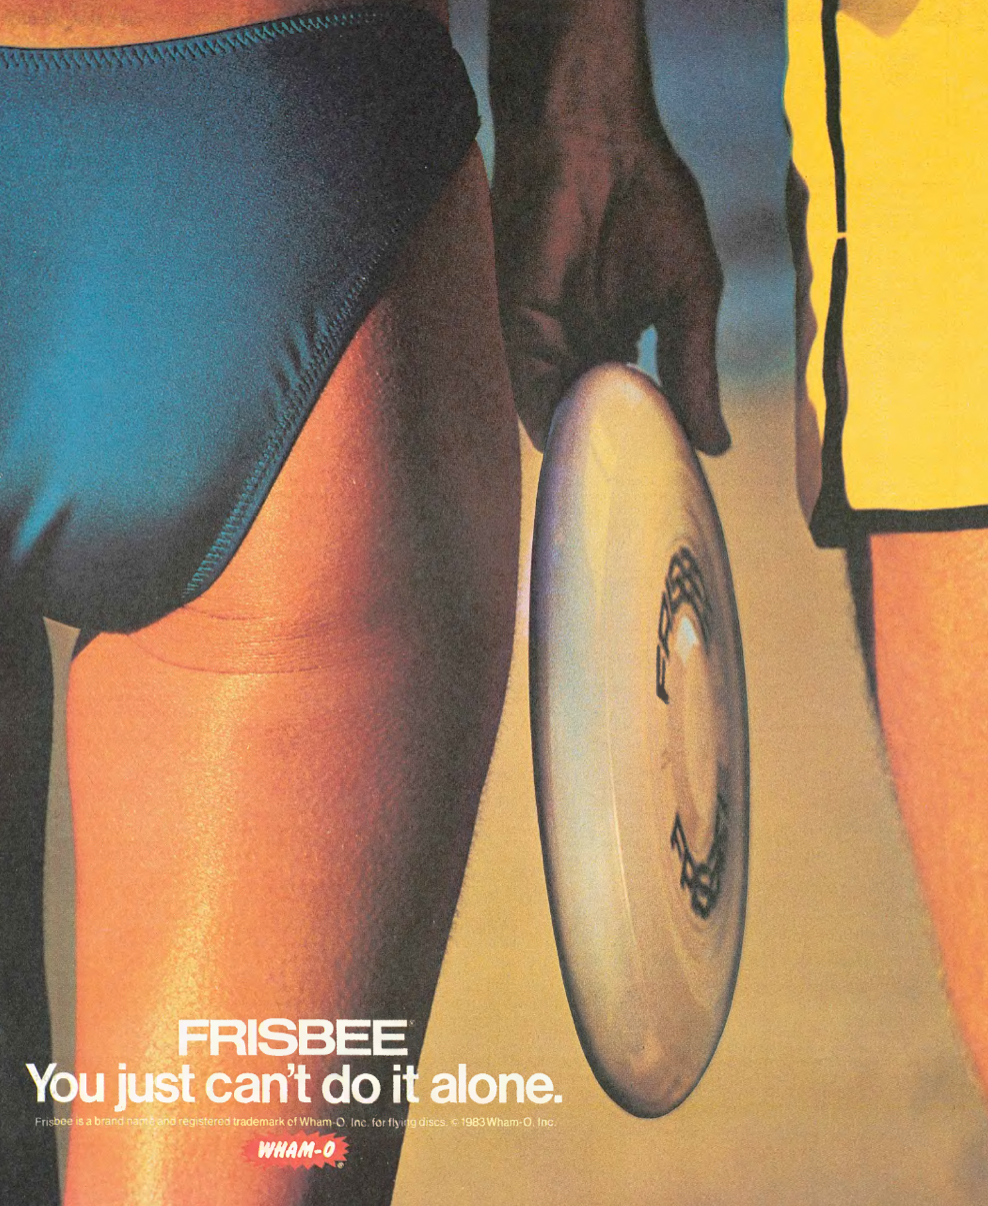 Advertisement for Frisbee…it's somewhat refreshing to view advertisements before the age of Photoshop. Any hint of hair on a woman's leg would not be tolerable today (1983).